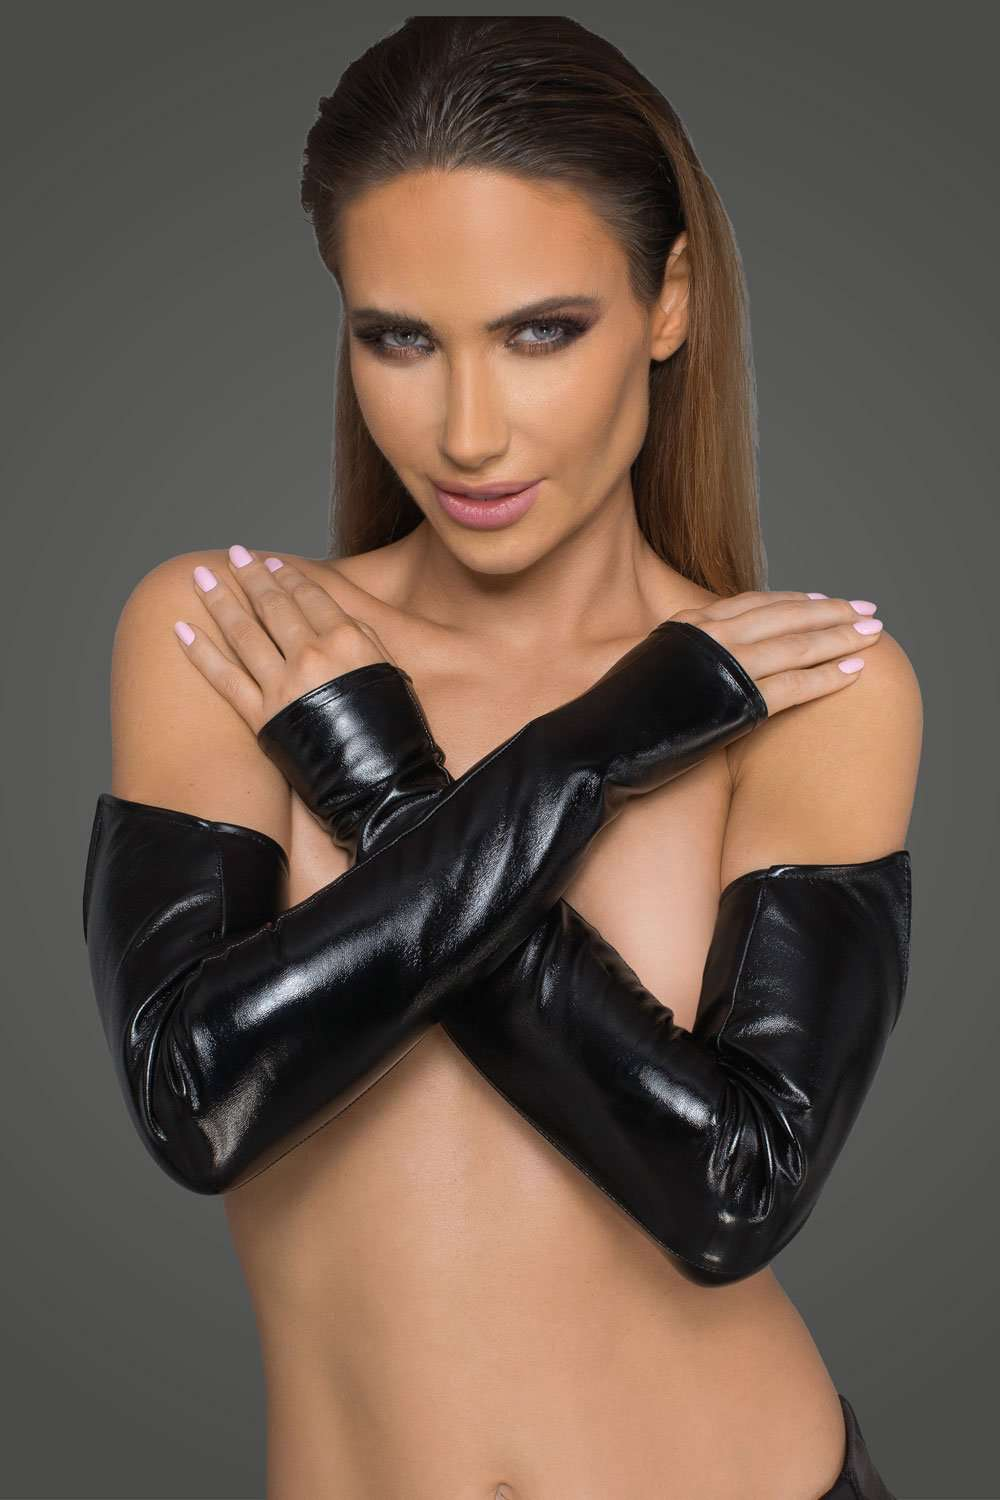 Noir Handmade Wetlook Gloves, F197-L-XL, F197-S-M